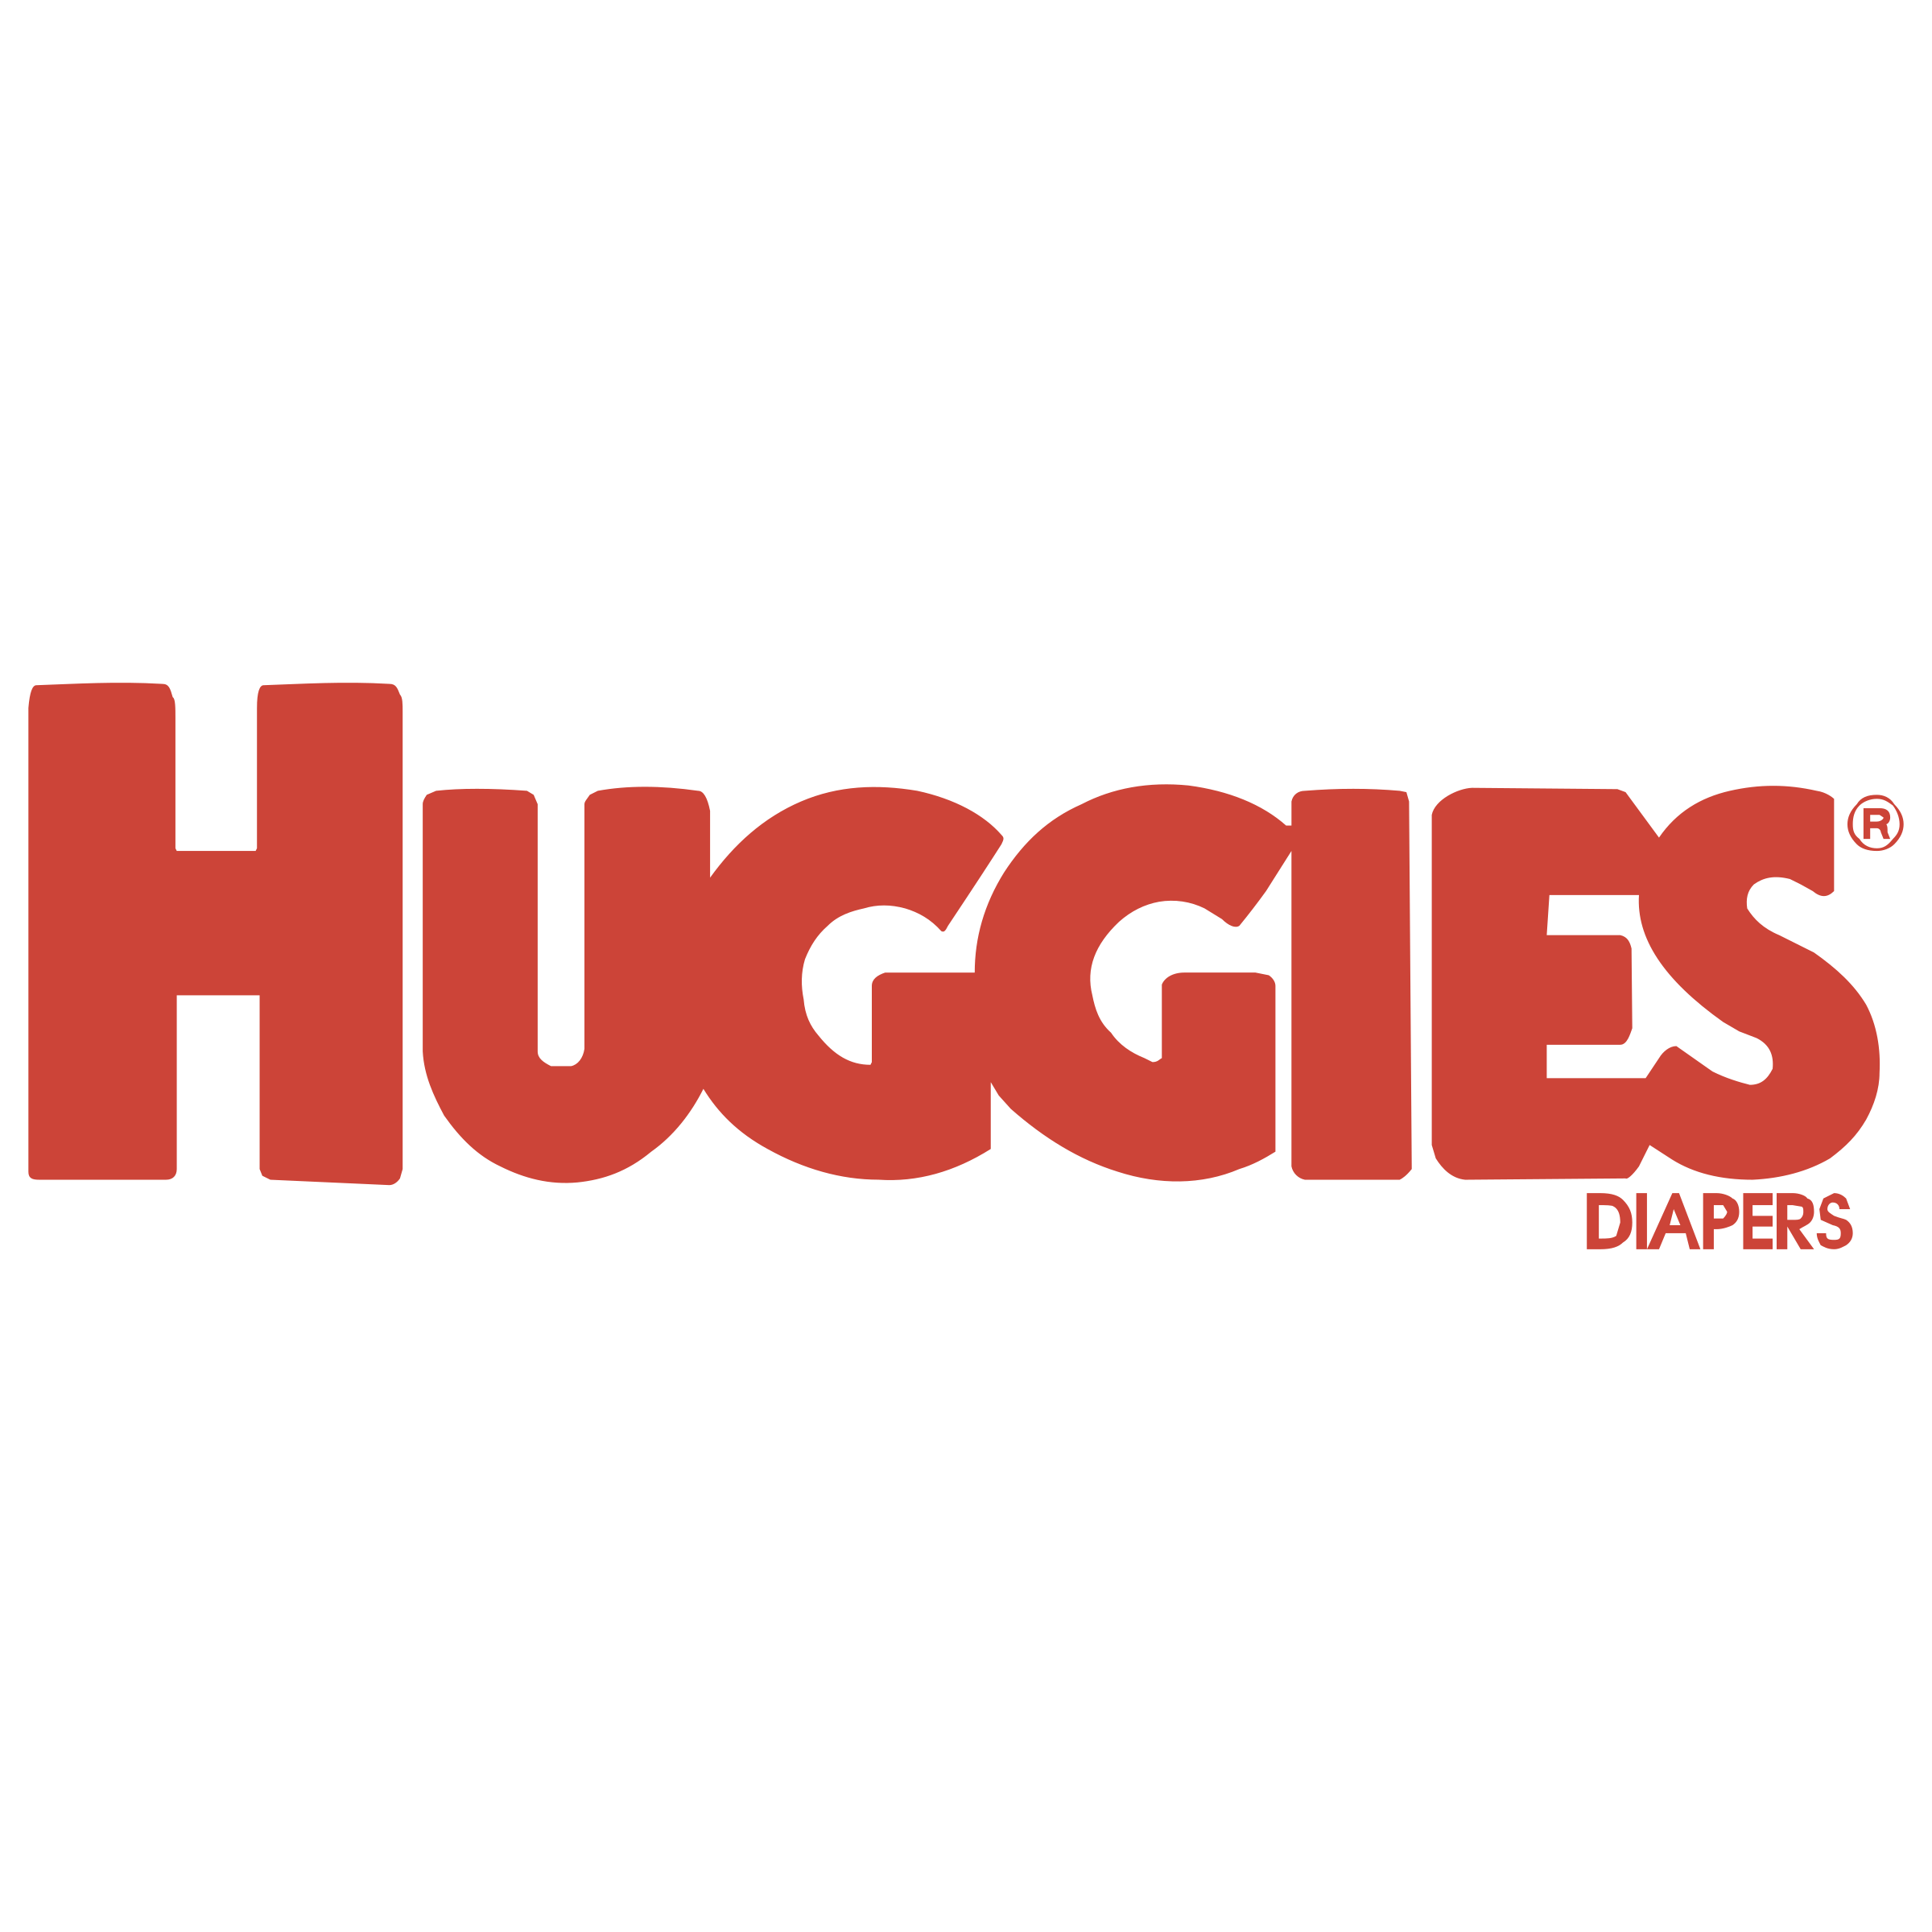 Huggies Logo PNG Transparent & SVG Vector.